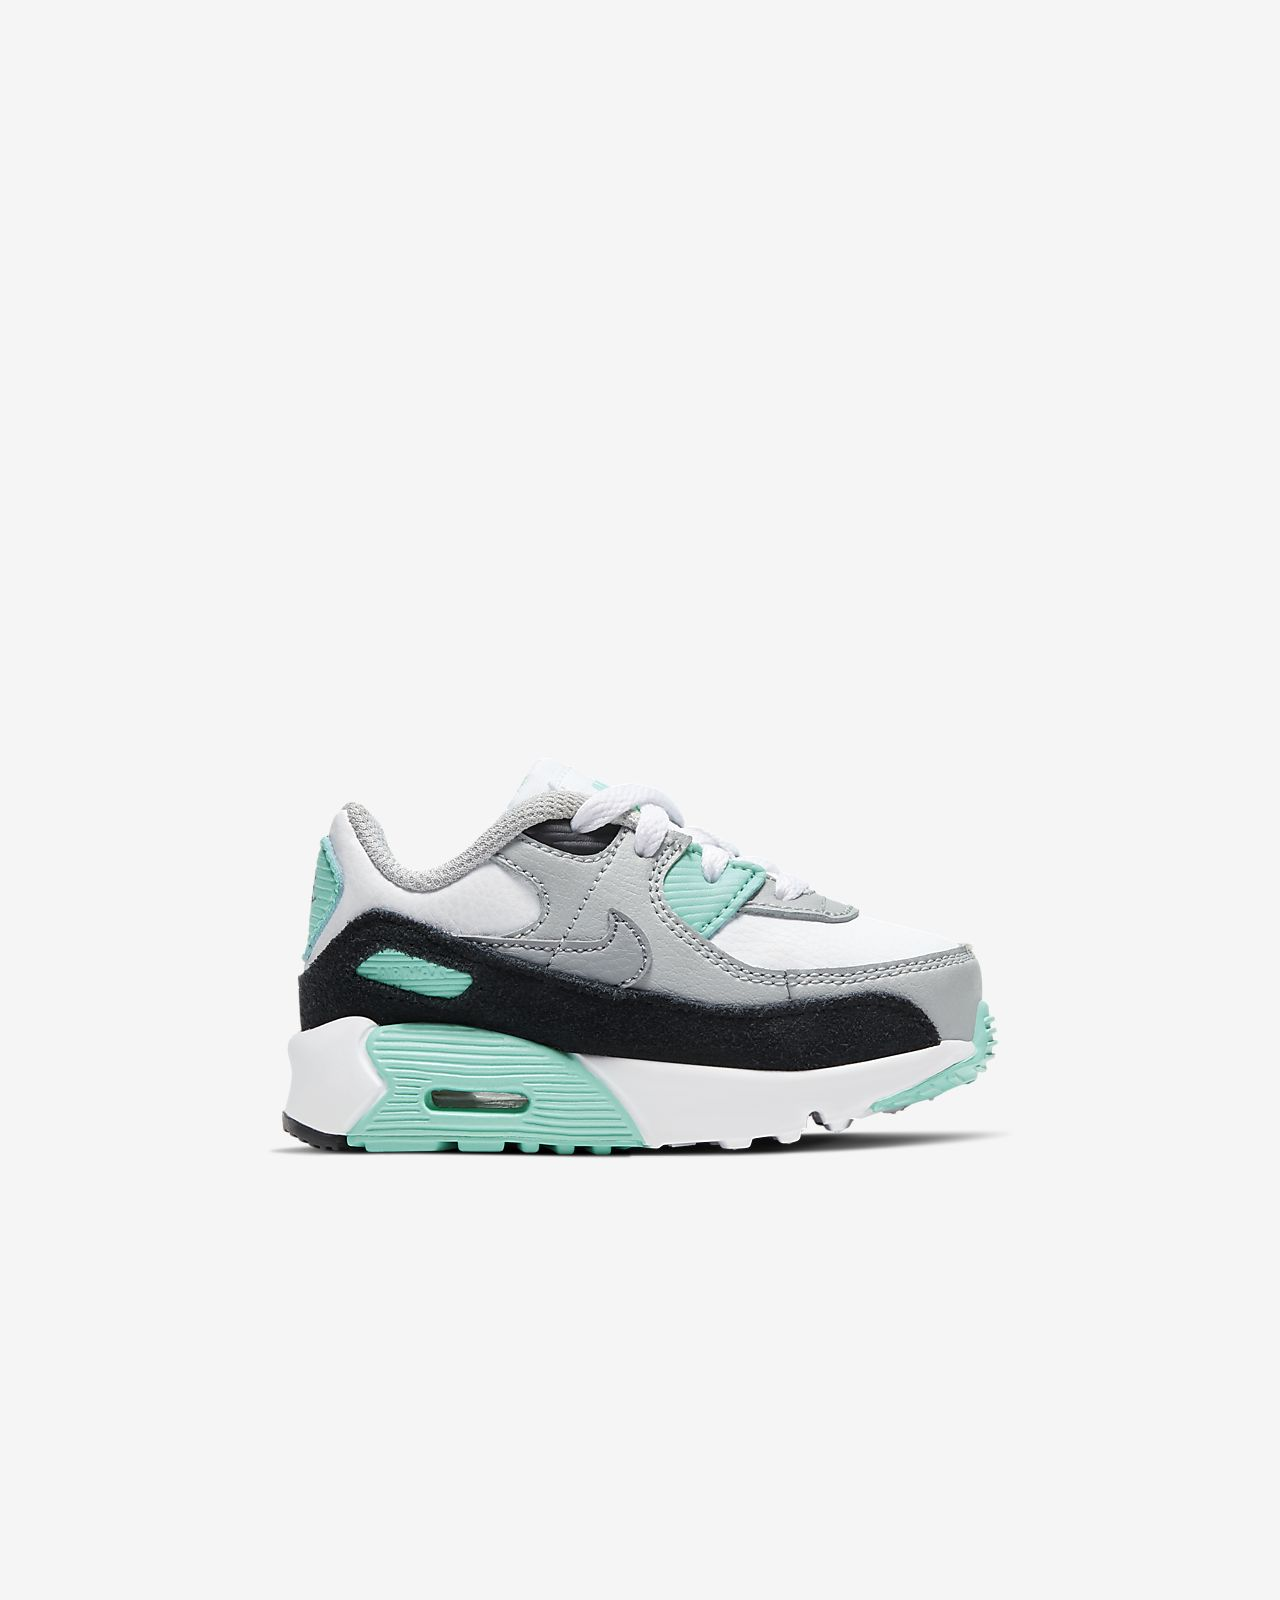 Nike Air Max 90 Girls' Toddler. Baby girl needs some new